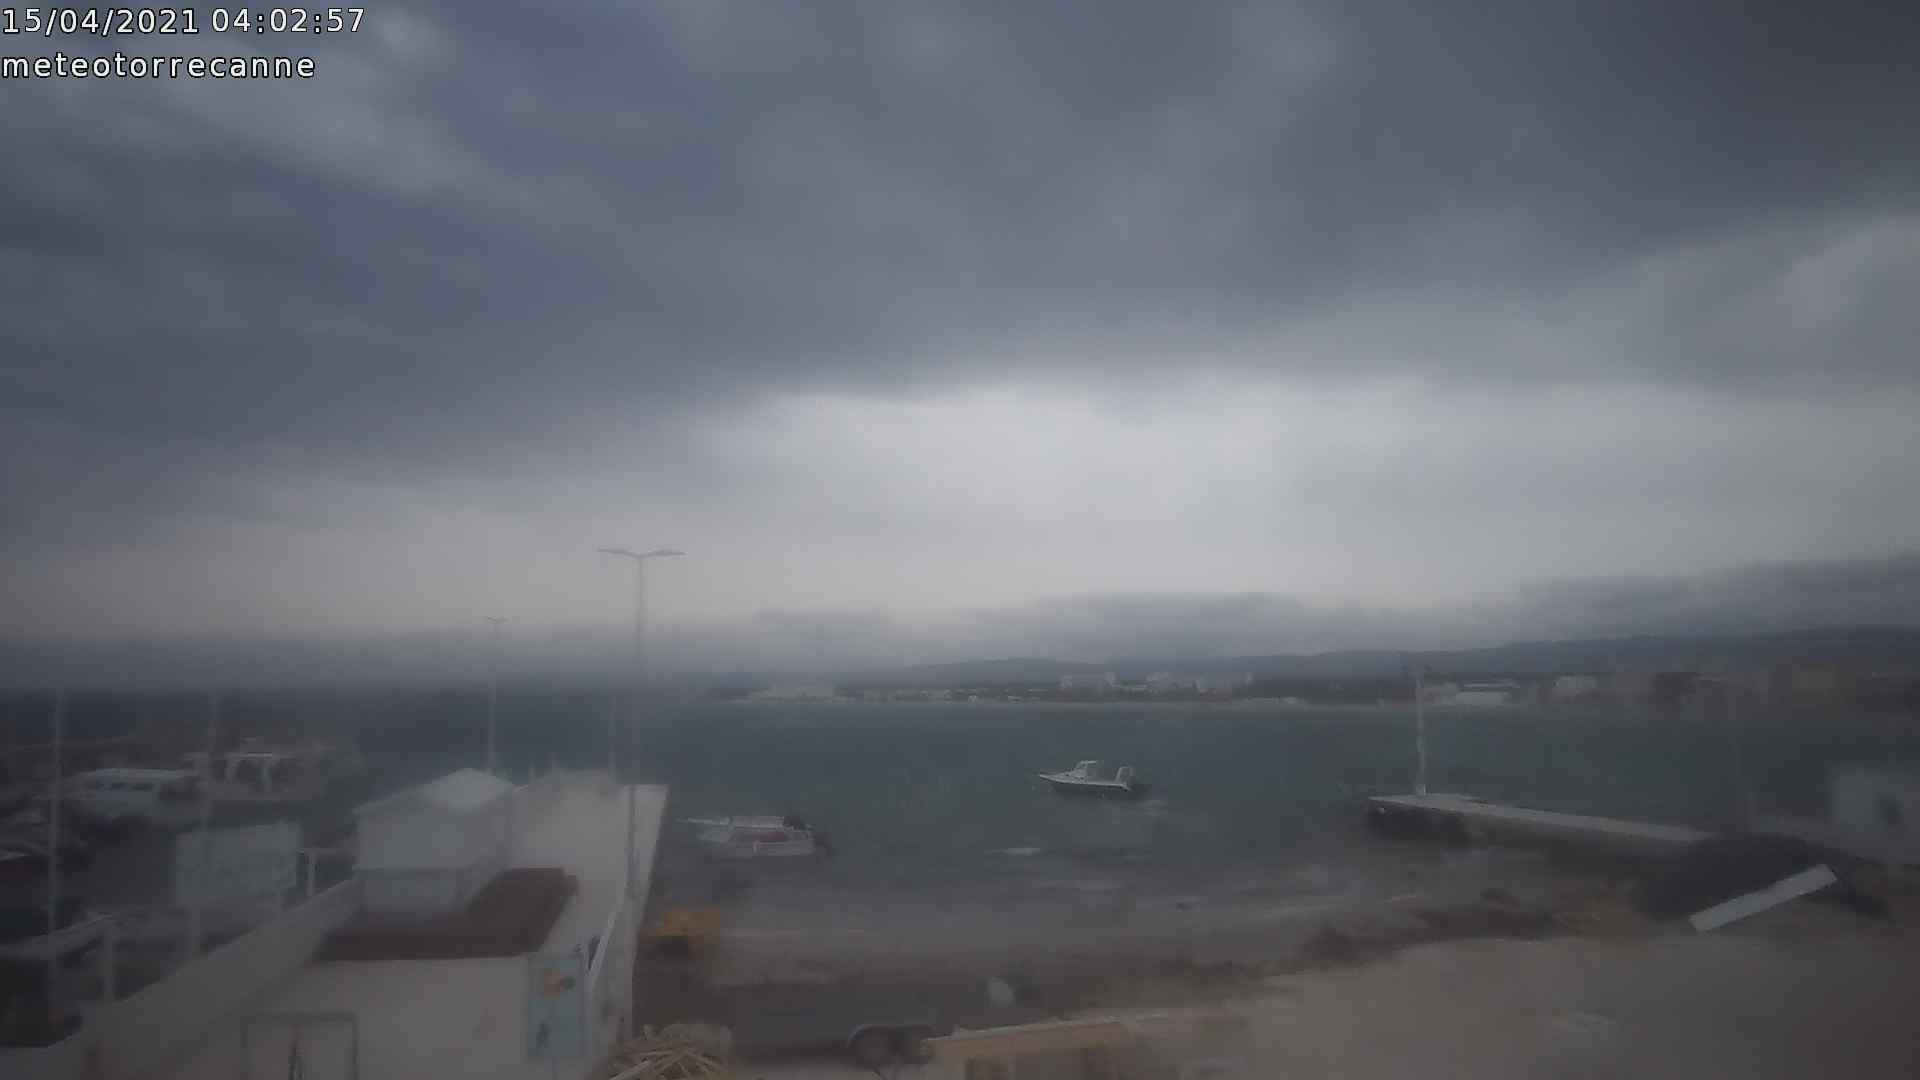 Webcam in diretta live da Torre Canne